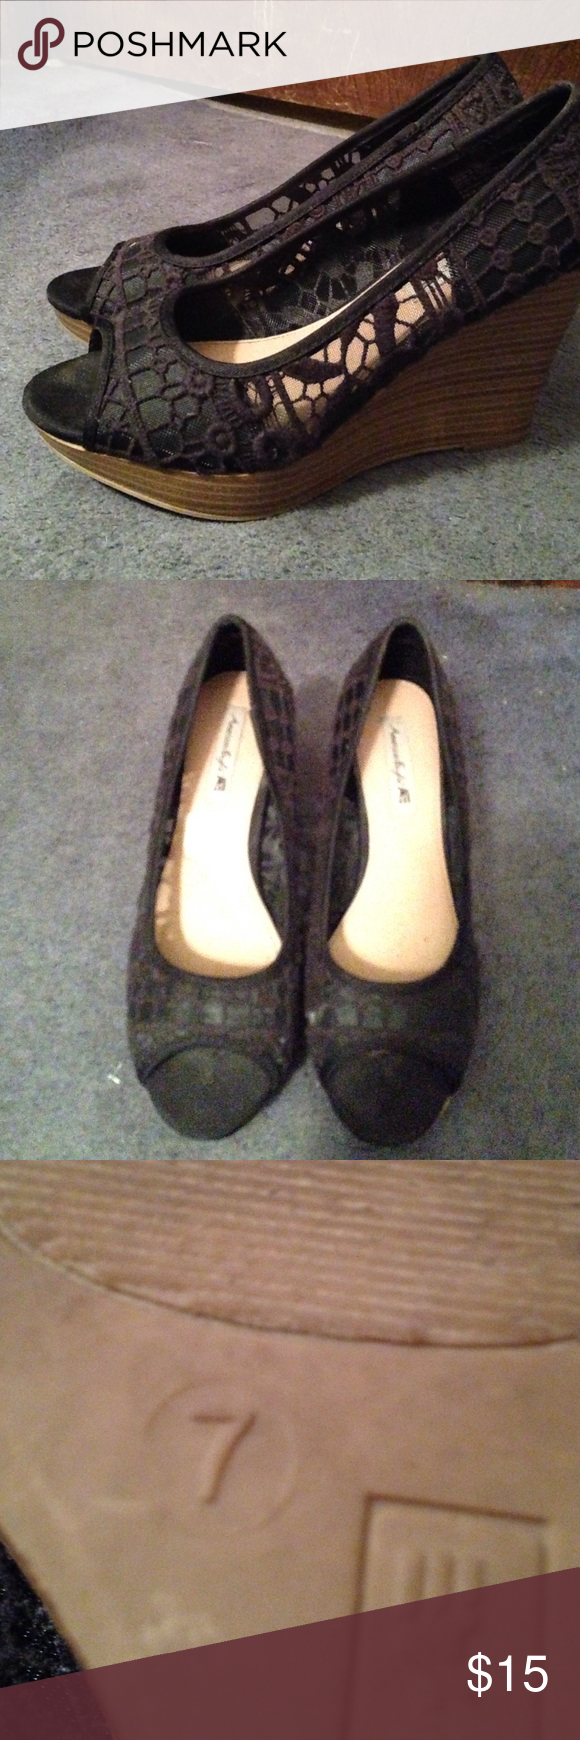 Worn once peep toe wedges Worn to my high school graduation and that's it size seven peep toe wedges. Black lace thanks for looking priced to sell American Eagle by Payless Shoes